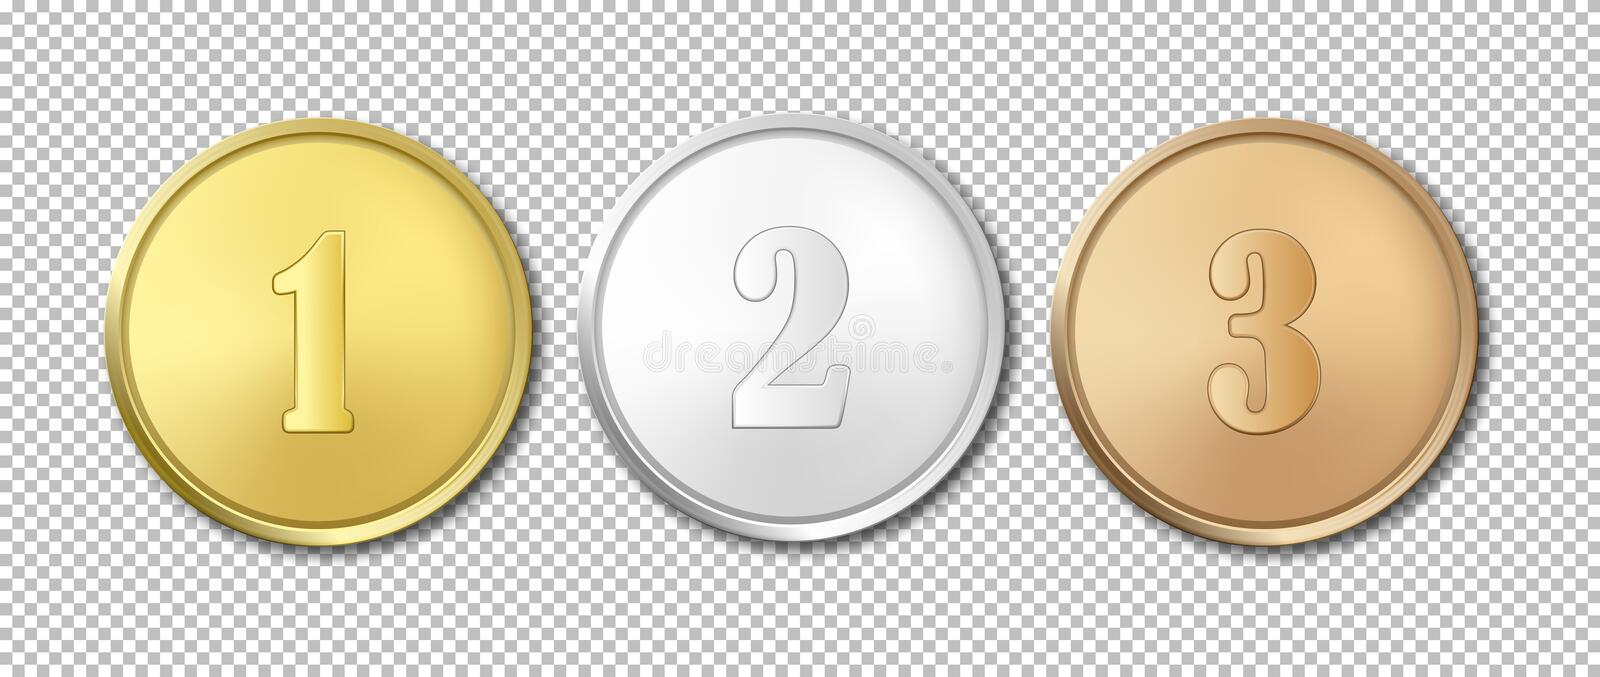 Realistic Vector Gold, Silver And Bronze Award Medals Icon Set - gold medal templates